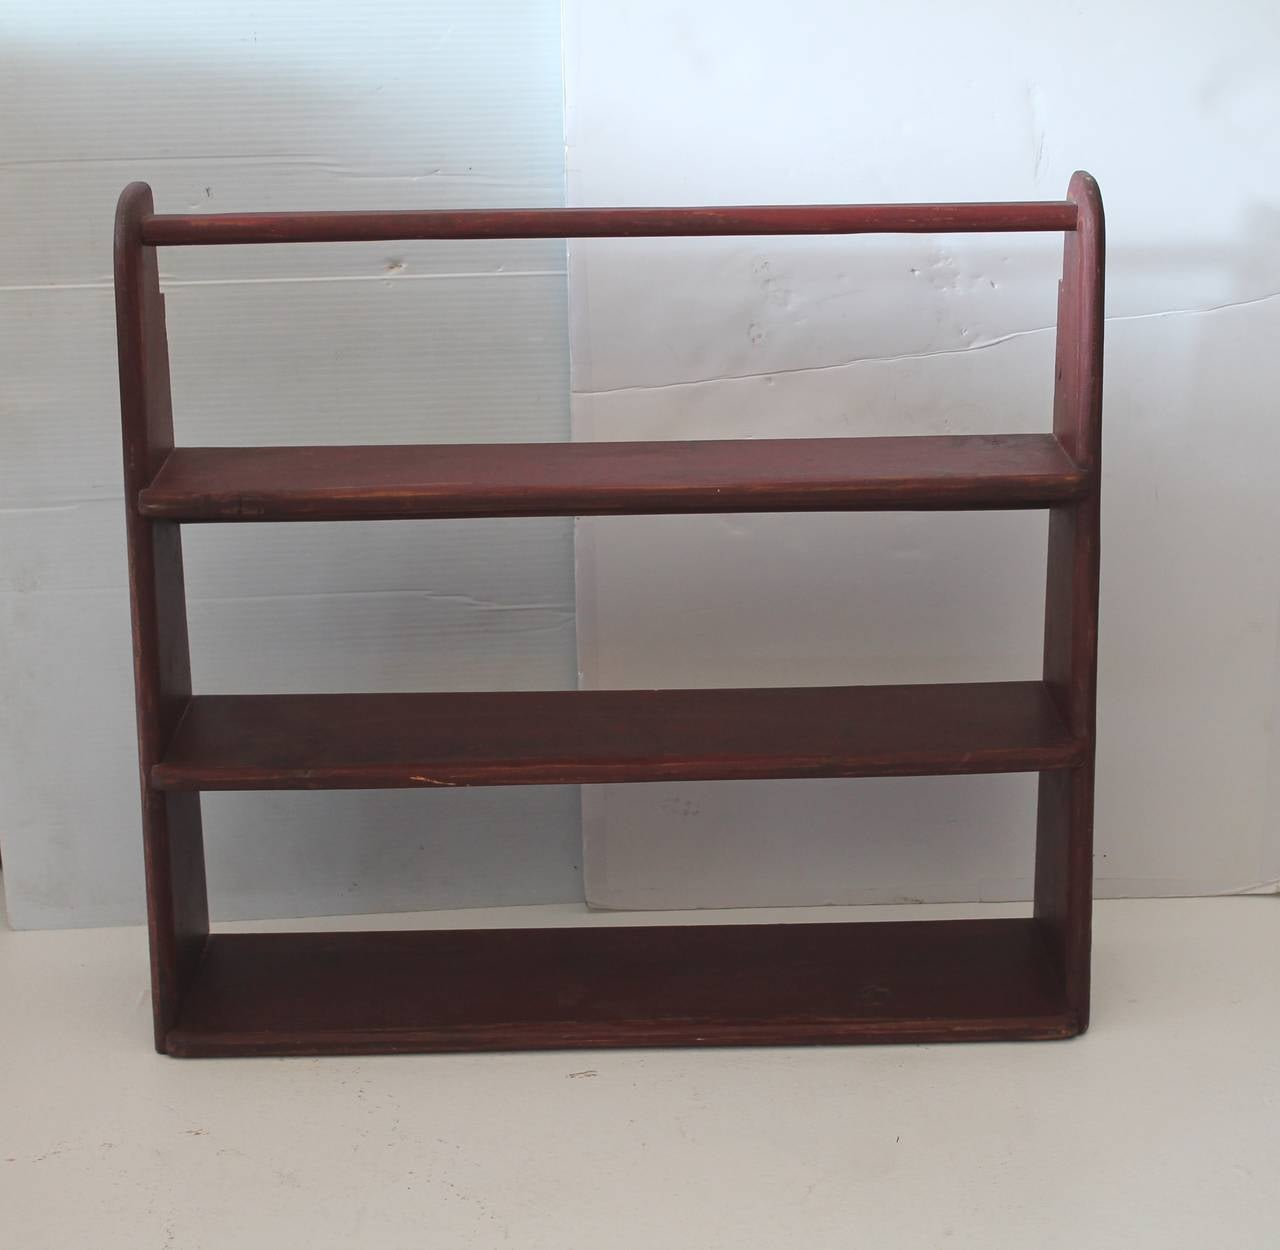 19th Century Original Red Painted Canted Shelf At 1stdibs